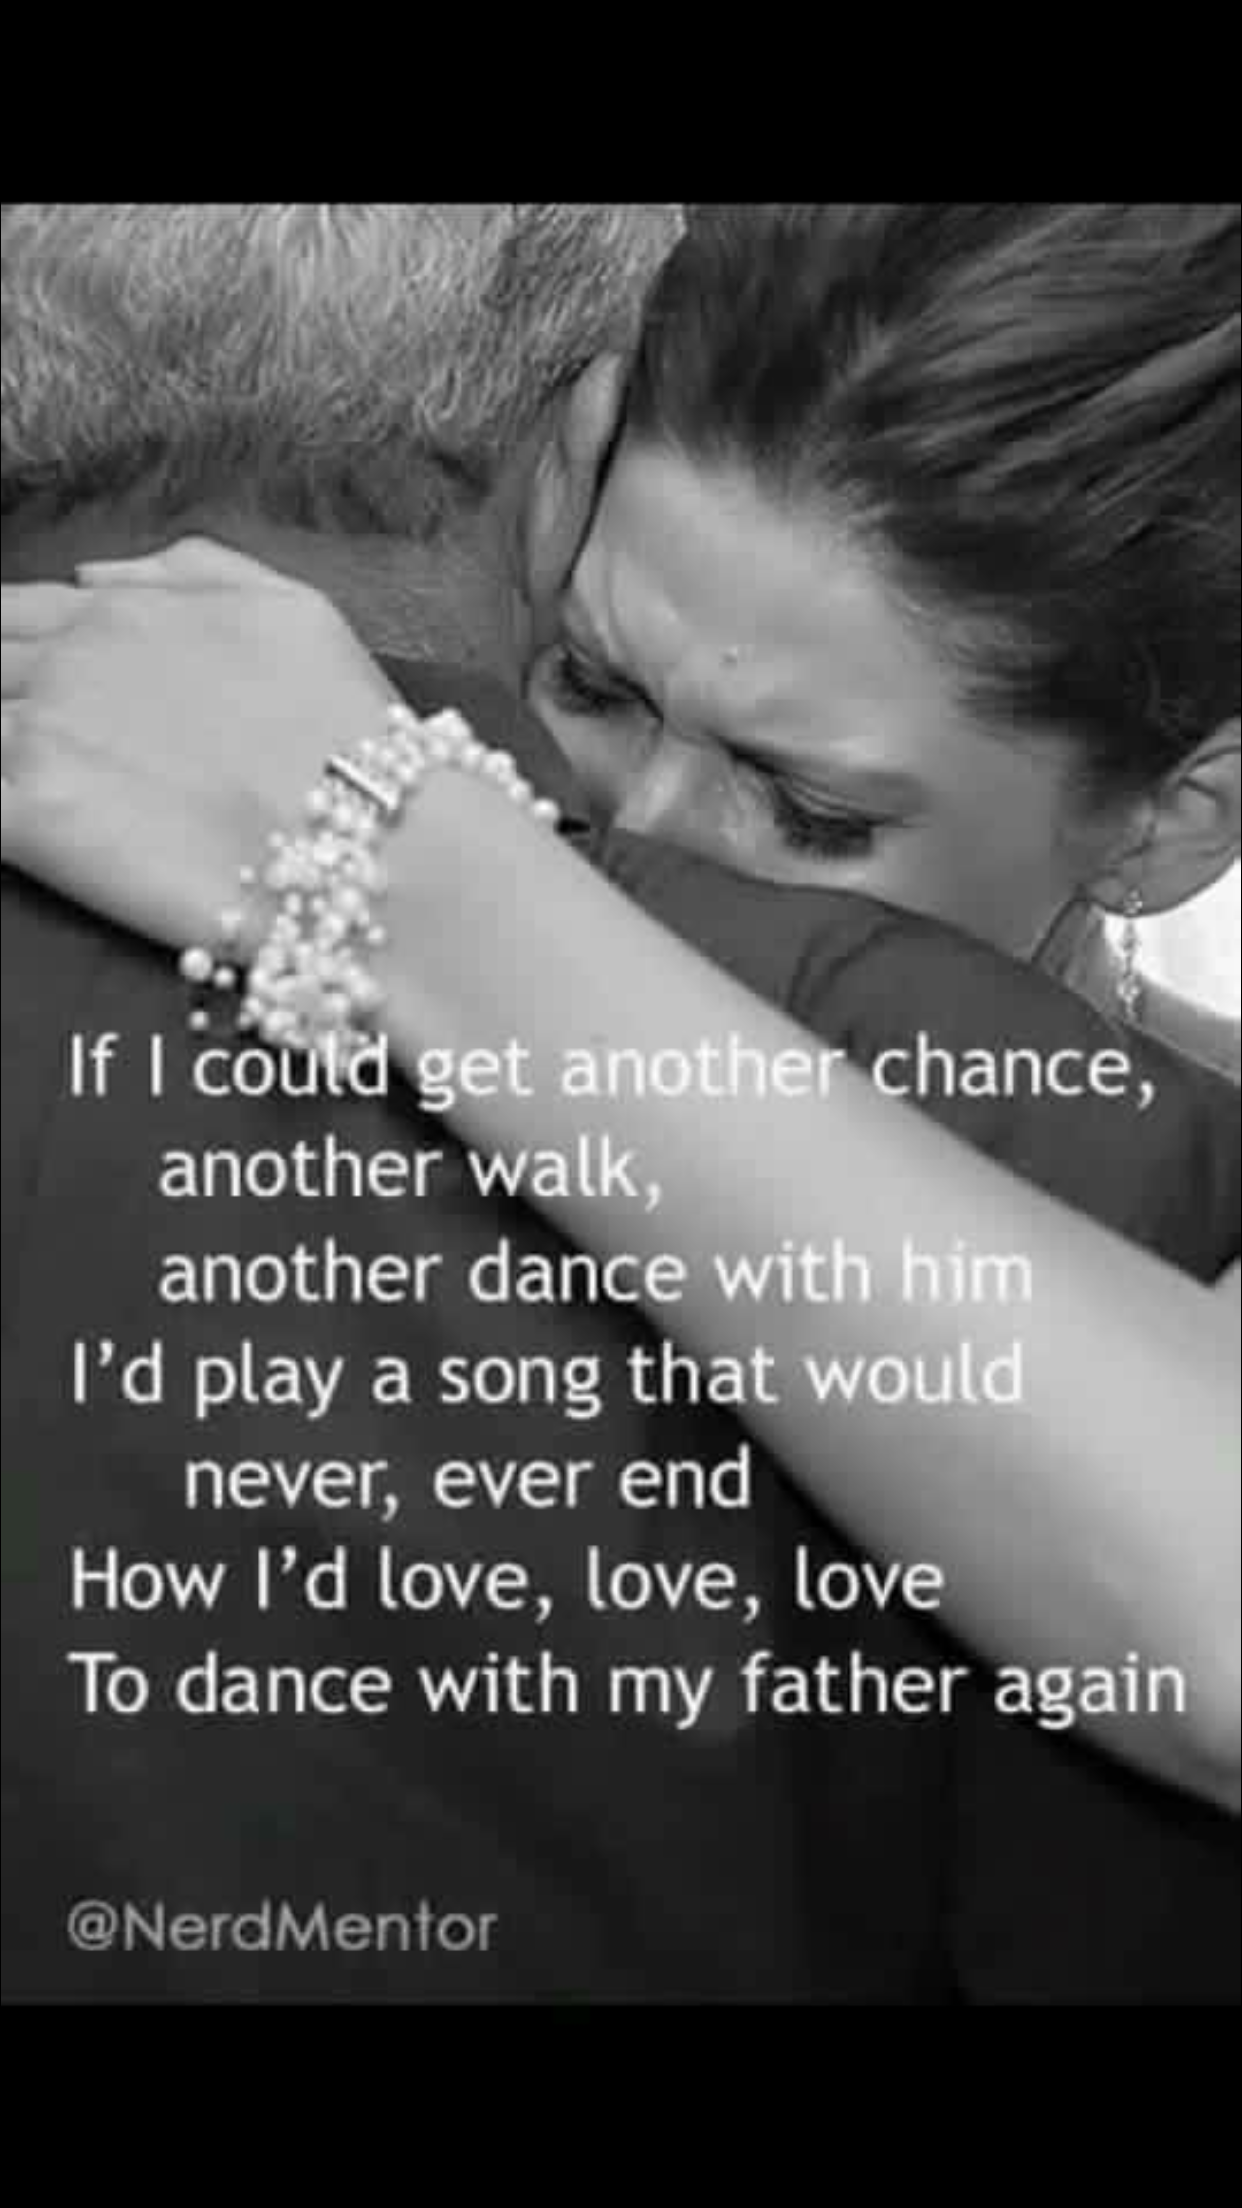 Daughter Missing Father Quotes : daughter, missing, father, quotes, Medici, Thoughts, Quotes, Remembering